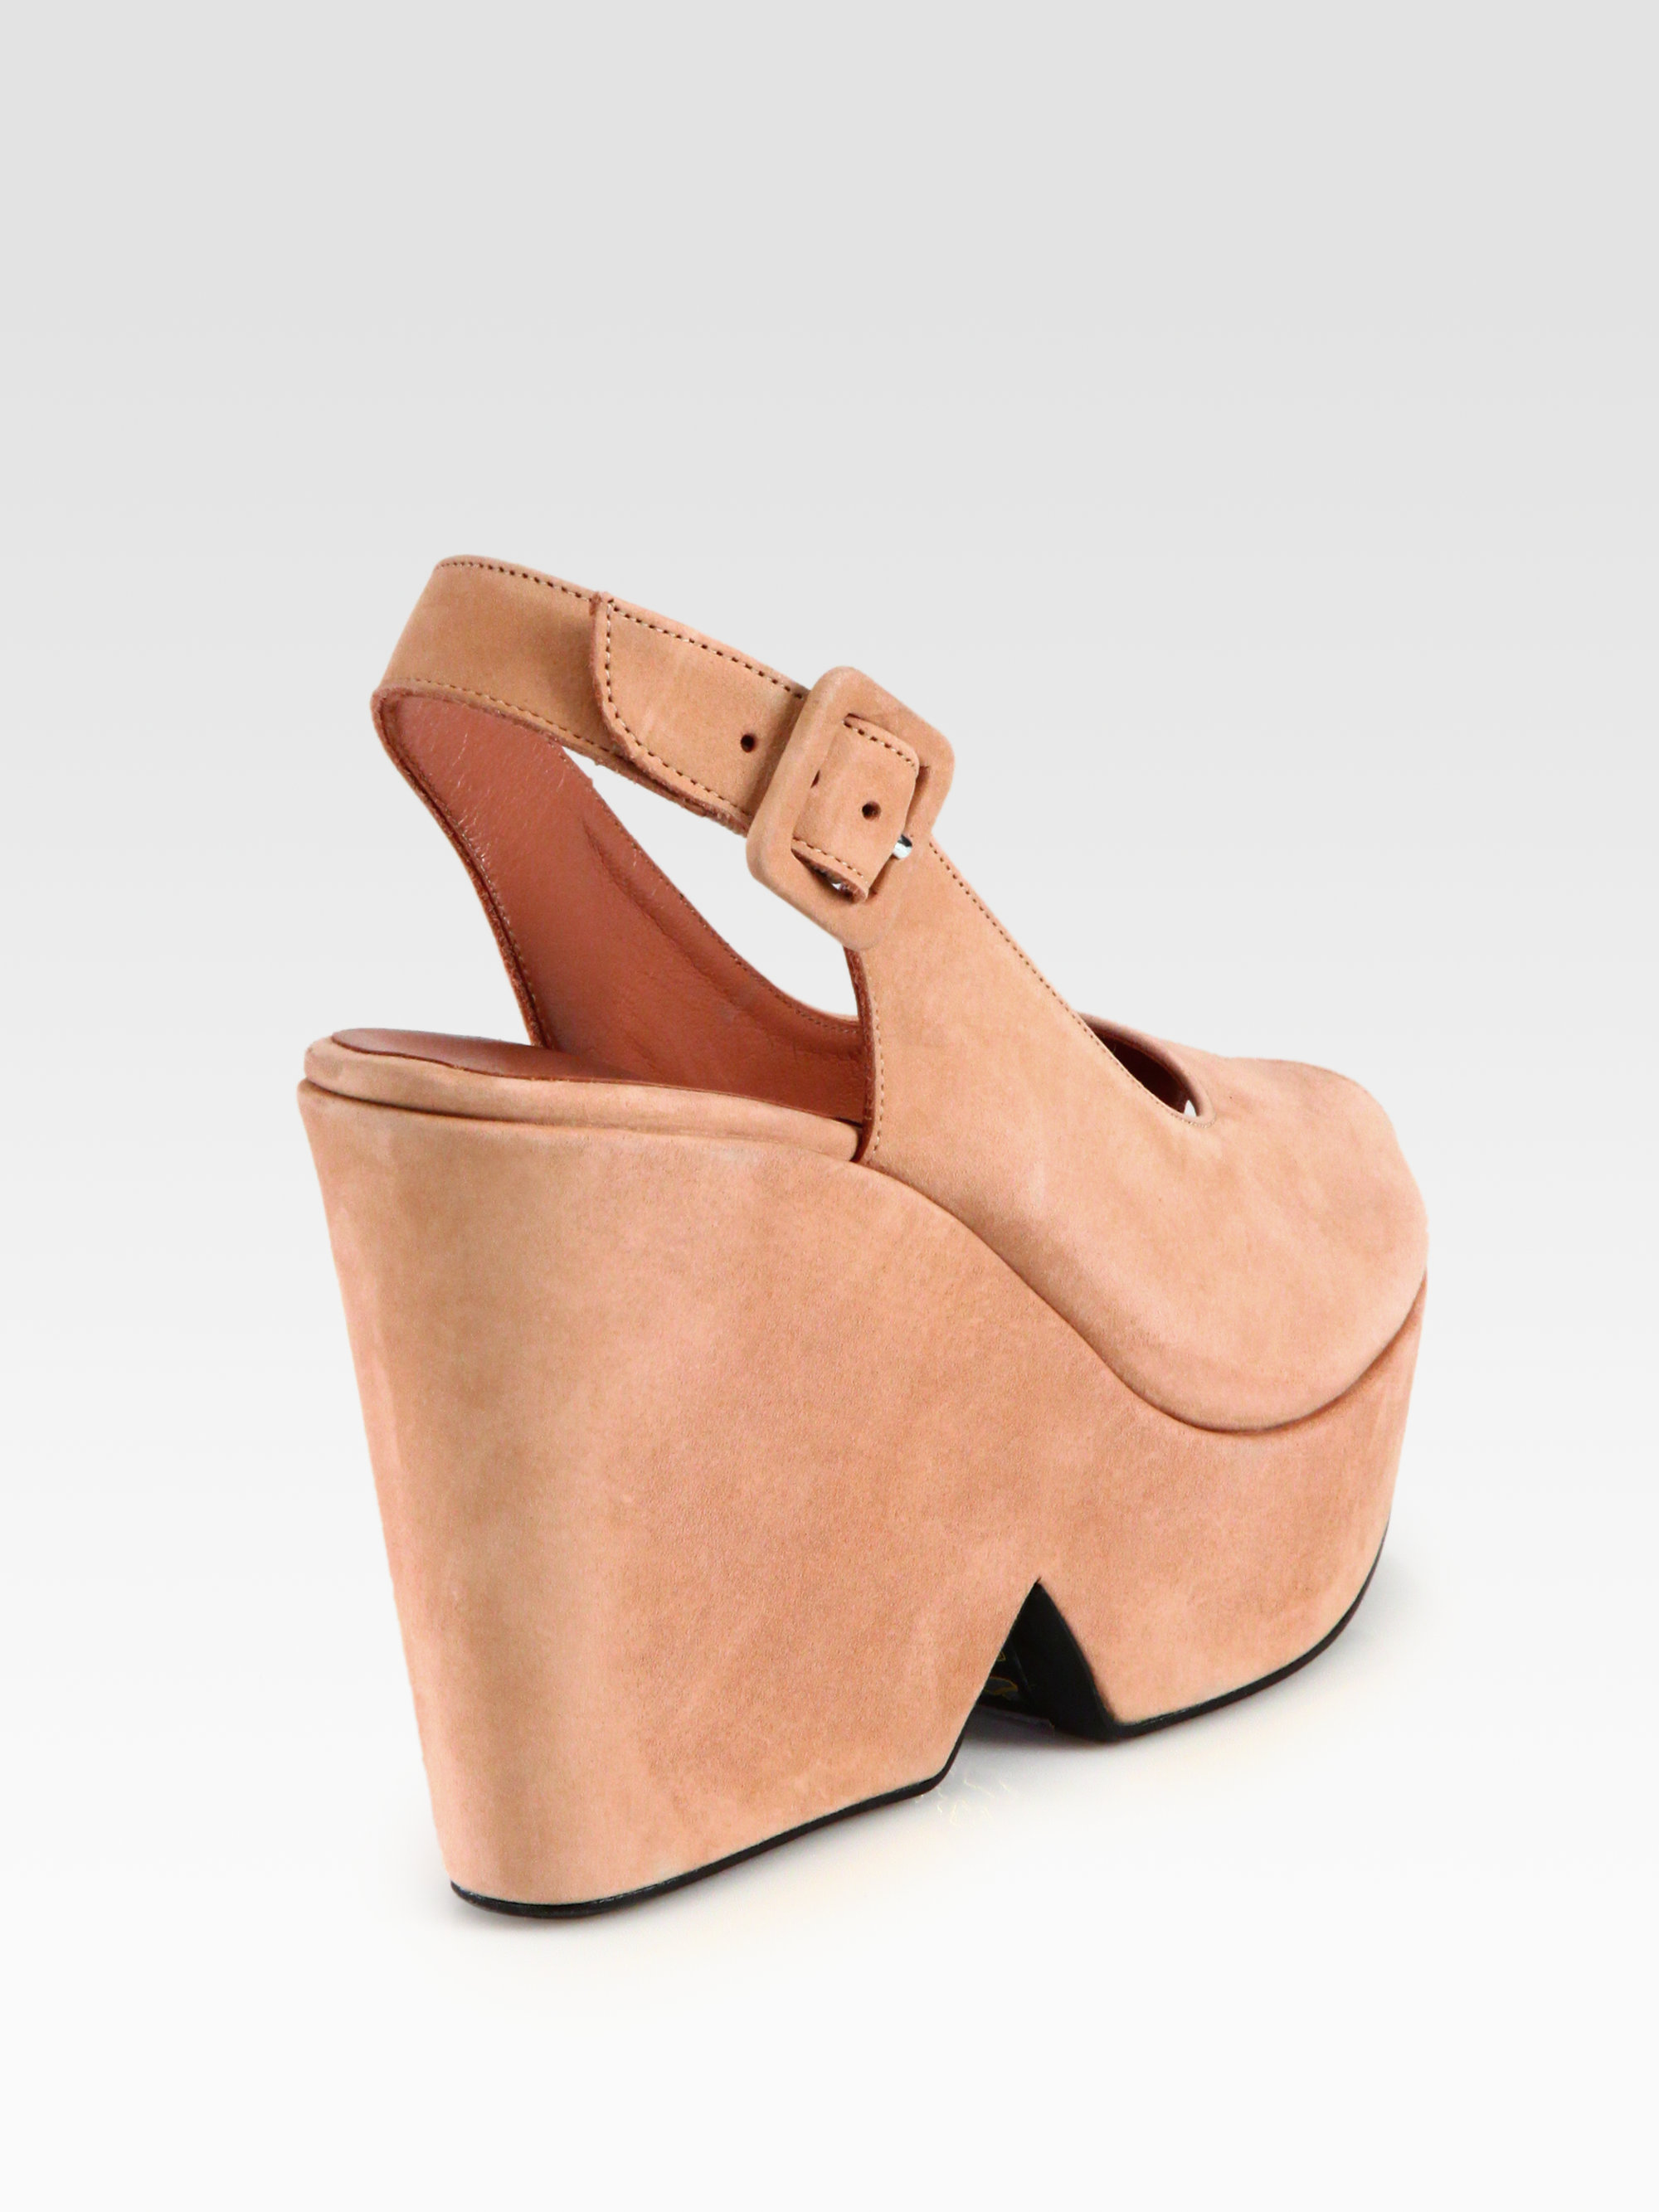 Robert Clergerie Clergerie Paris Cutout Platform Sandals cheap tumblr buy cheap genuine outlet store Locations bocrDMr